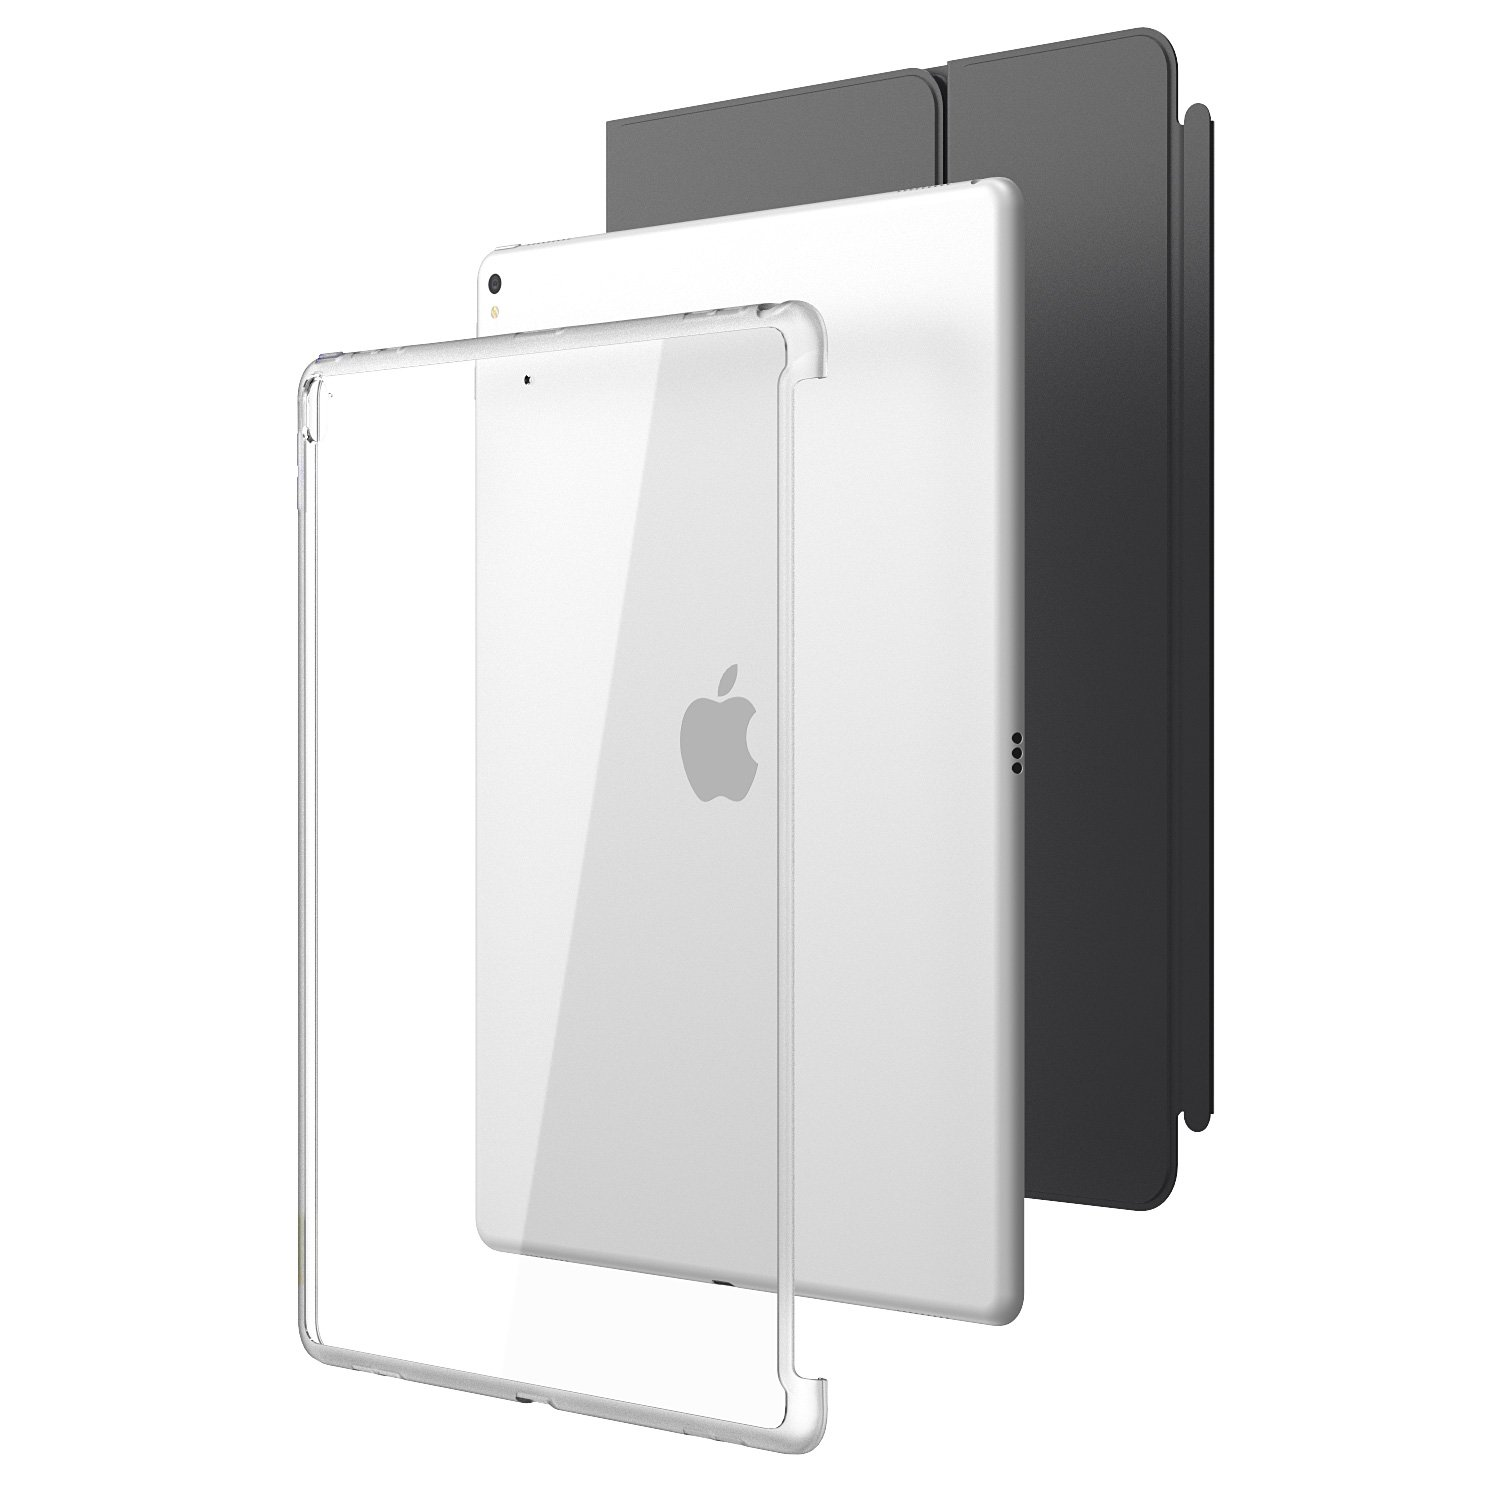 New iPad Pro 12.9 2017 Case, i-Blason [Compatible with Official Smart Cover and Smart Keyboard] Clear Hybrid Cover Case for Apple iPad Pro 12.9 2017 ...